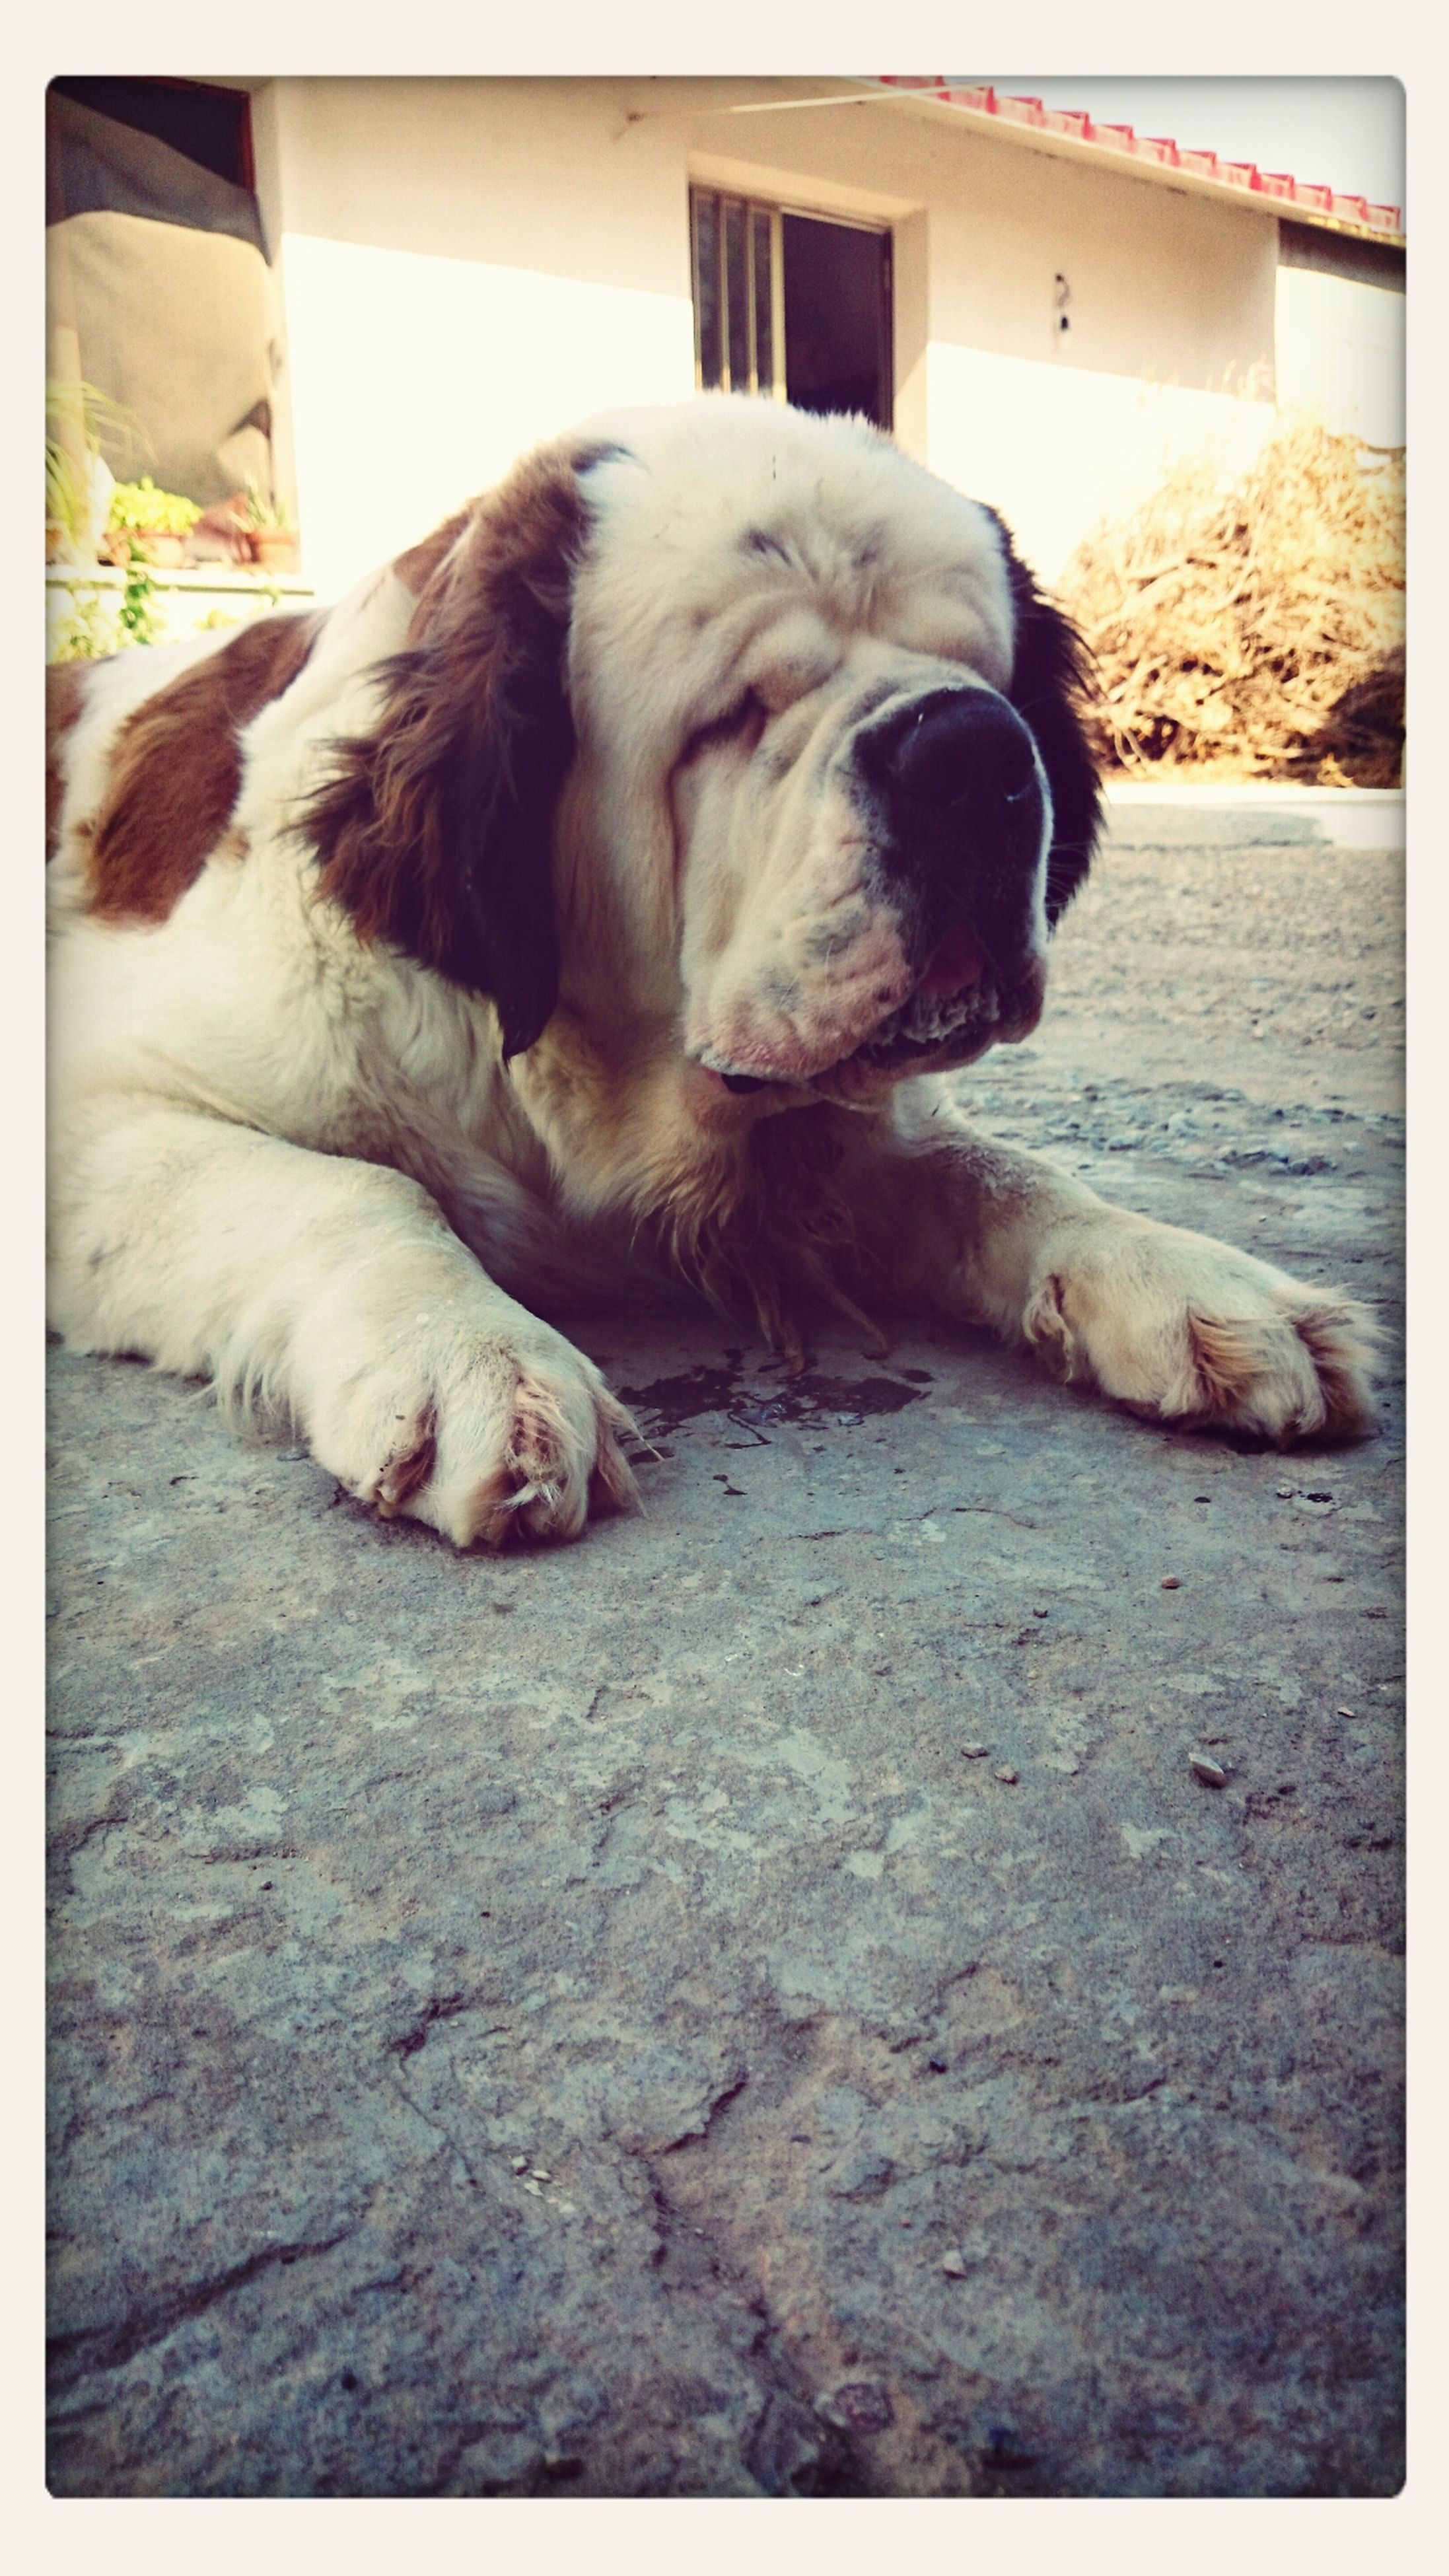 domestic animals, animal themes, pets, one animal, mammal, transfer print, dog, auto post production filter, relaxation, sleeping, resting, lying down, zoology, full length, animal, no people, vertebrate, two animals, indoors, high angle view